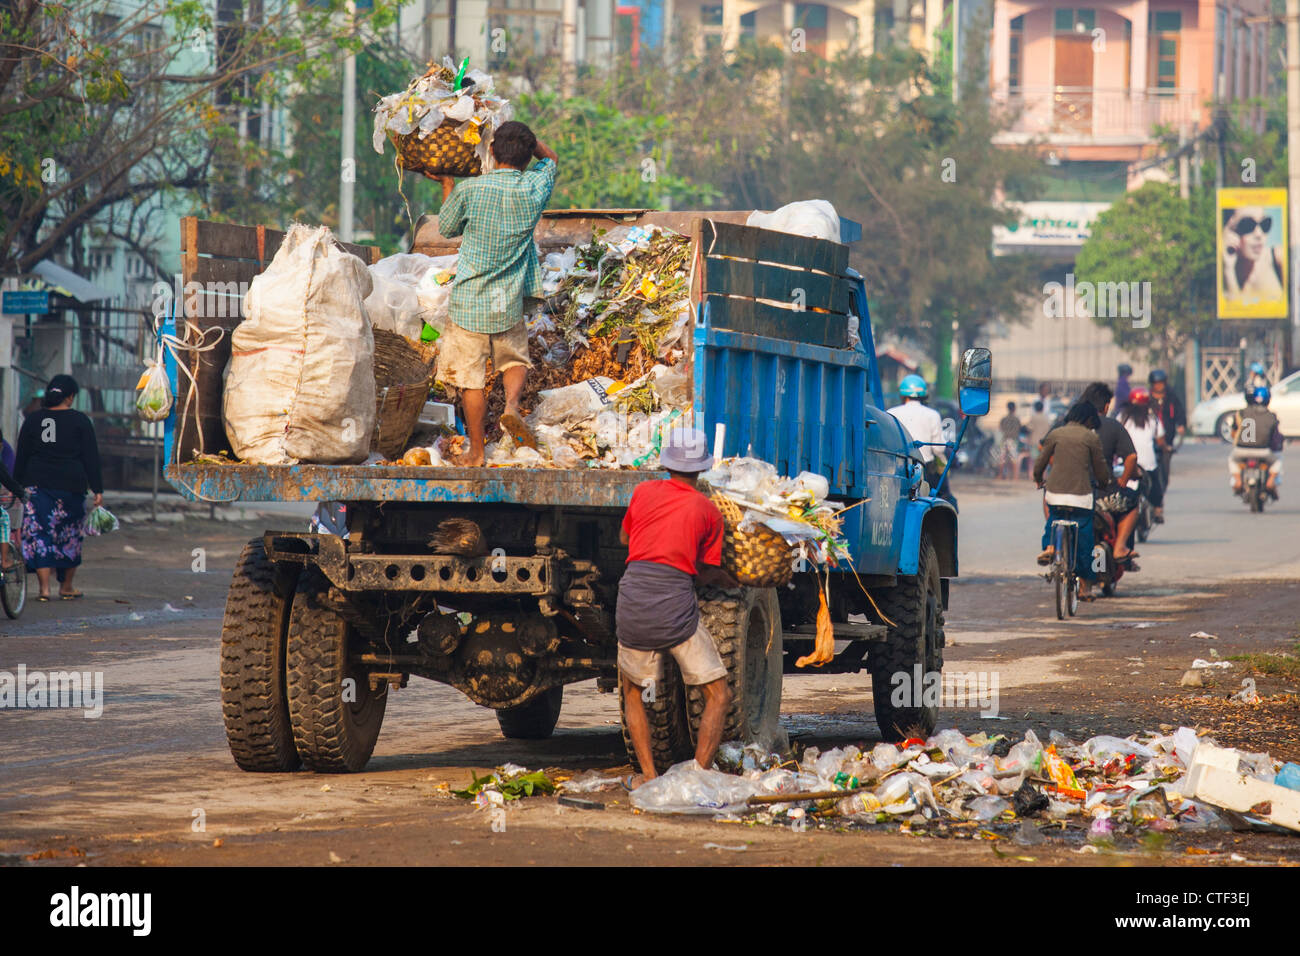 Garbage collection in Mandalay, Myanmar - Stock Image